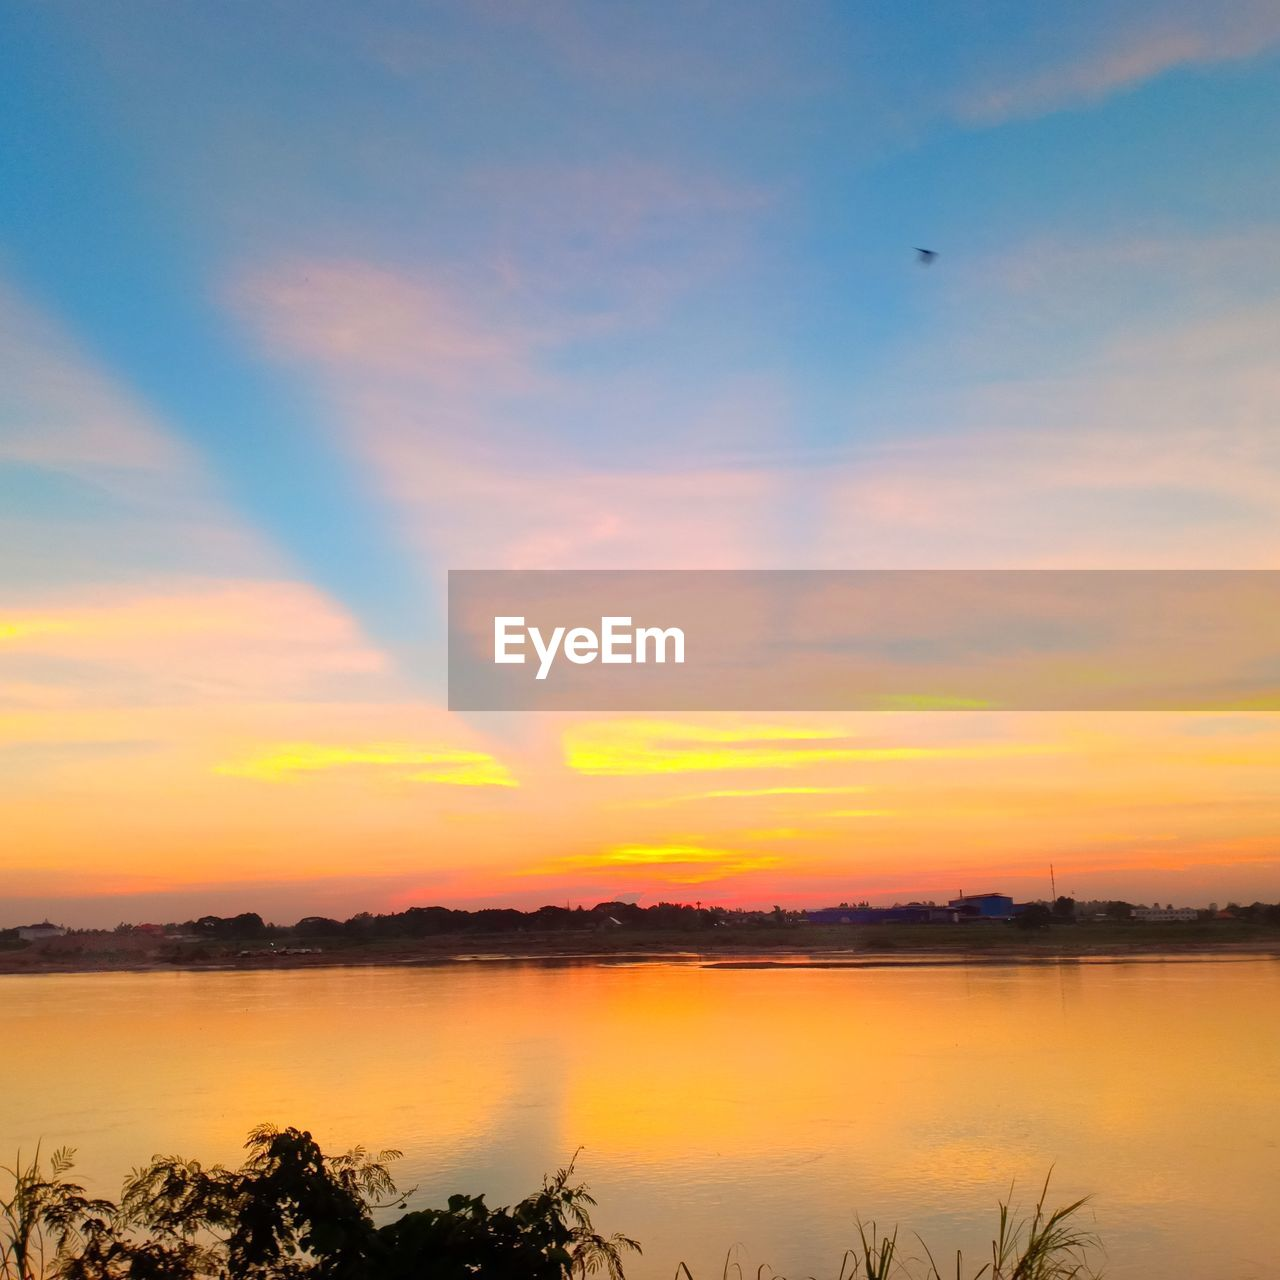 sunset, beauty in nature, scenics - nature, sky, tranquility, water, tranquil scene, orange color, cloud - sky, reflection, idyllic, lake, nature, tree, no people, plant, silhouette, non-urban scene, waterfront, outdoors, romantic sky